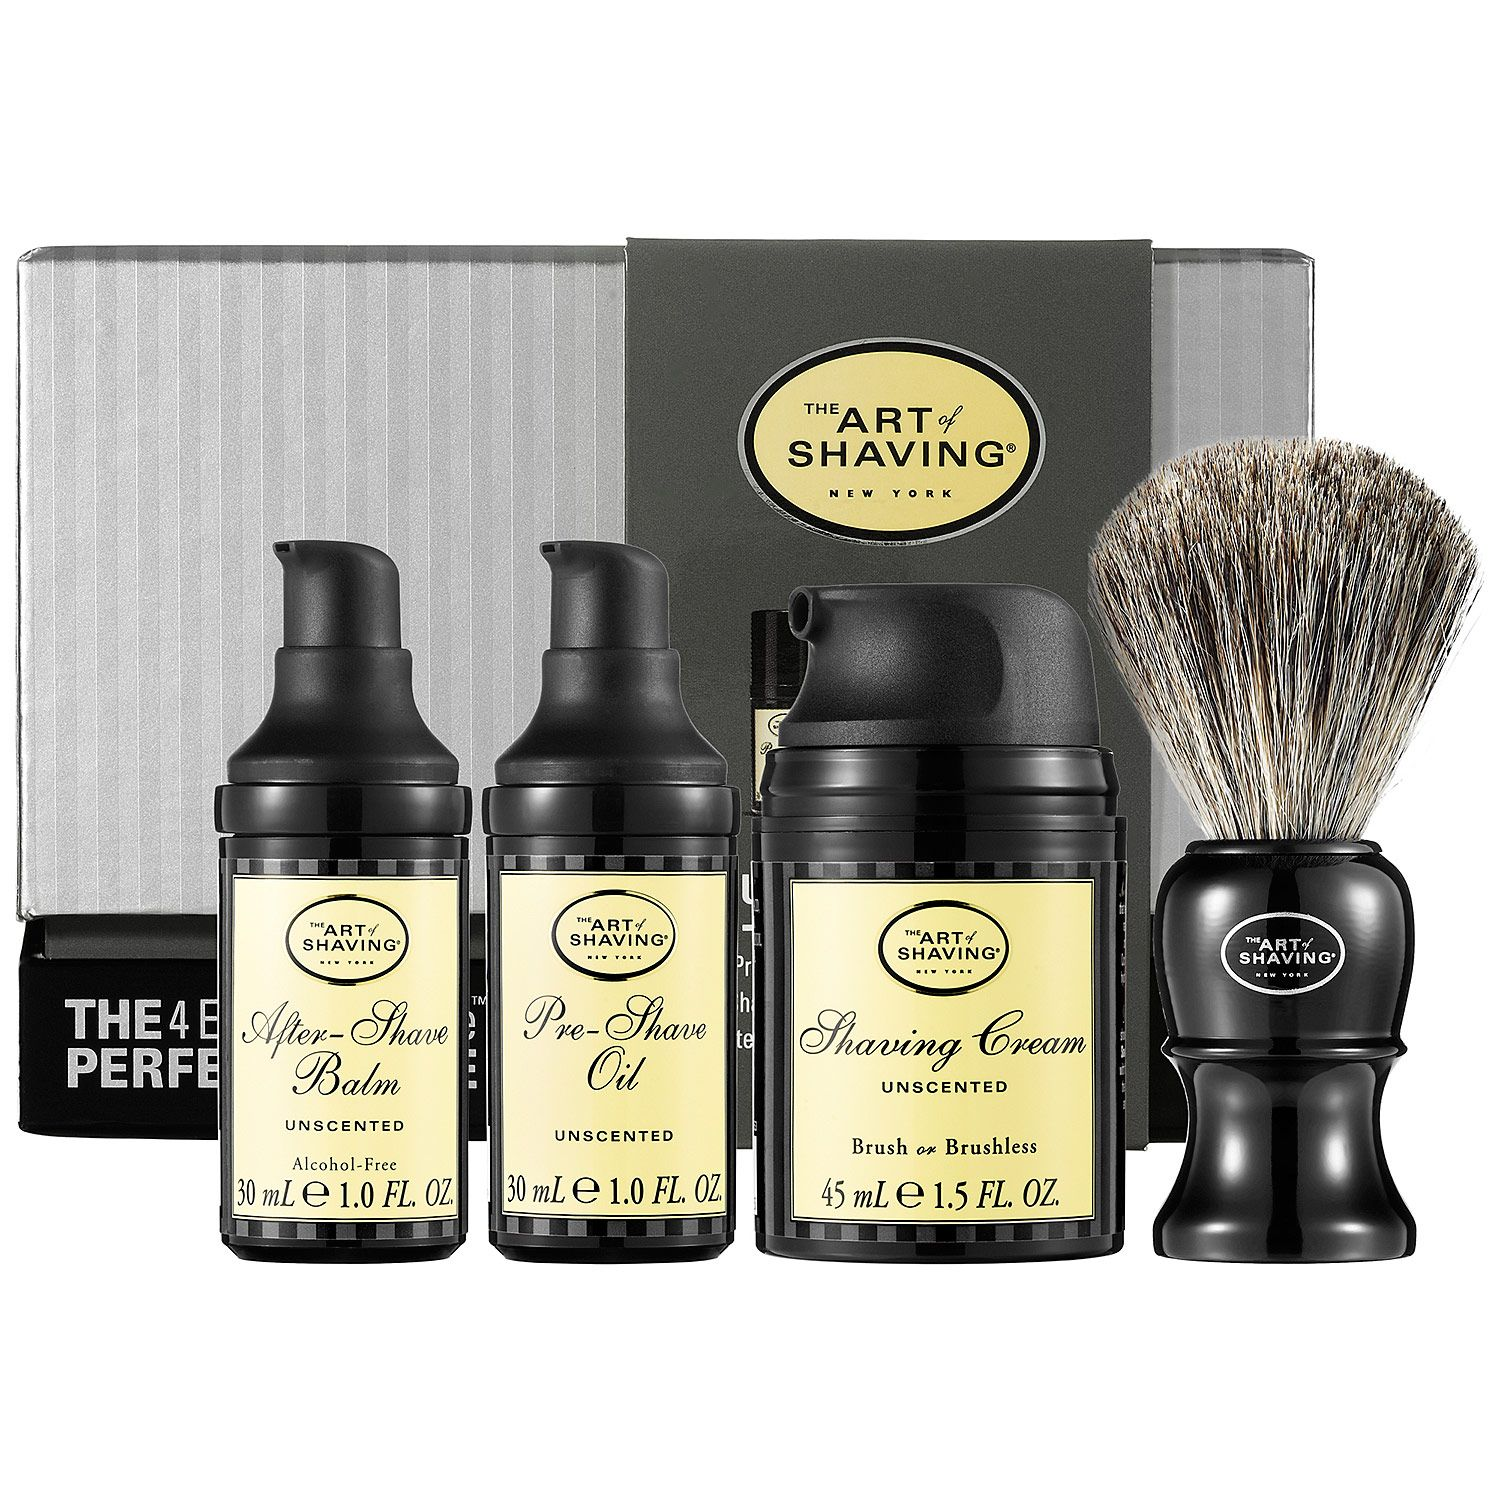 The Art Of Shaving The 4 Elements Of The Perfect Shave Carry On Unscented Skincare Gifts Grooming Gifts The Art Of Shaving Sephora